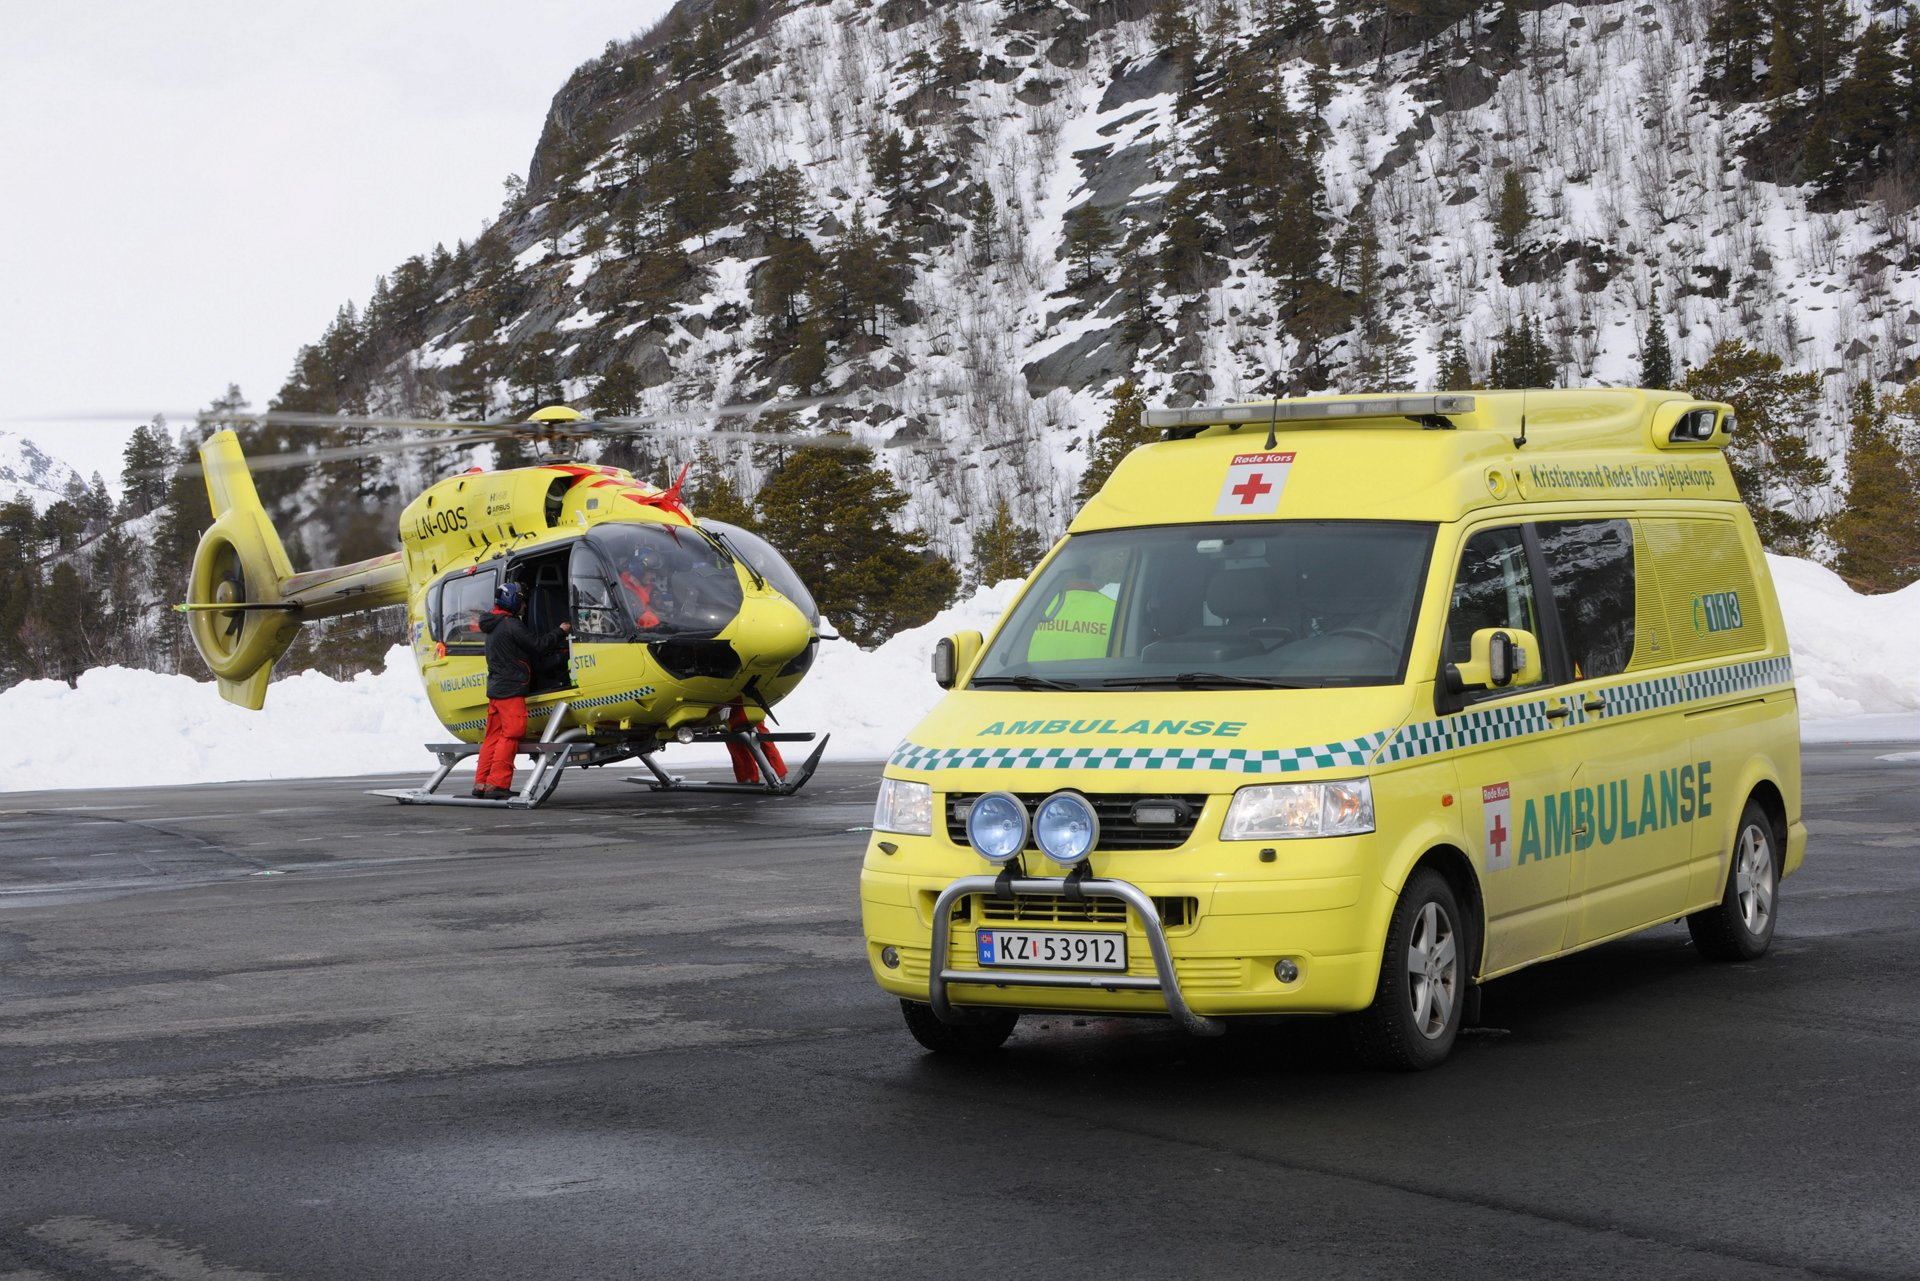 An Airbus helicopter on the ground with ambulance in the foreground.